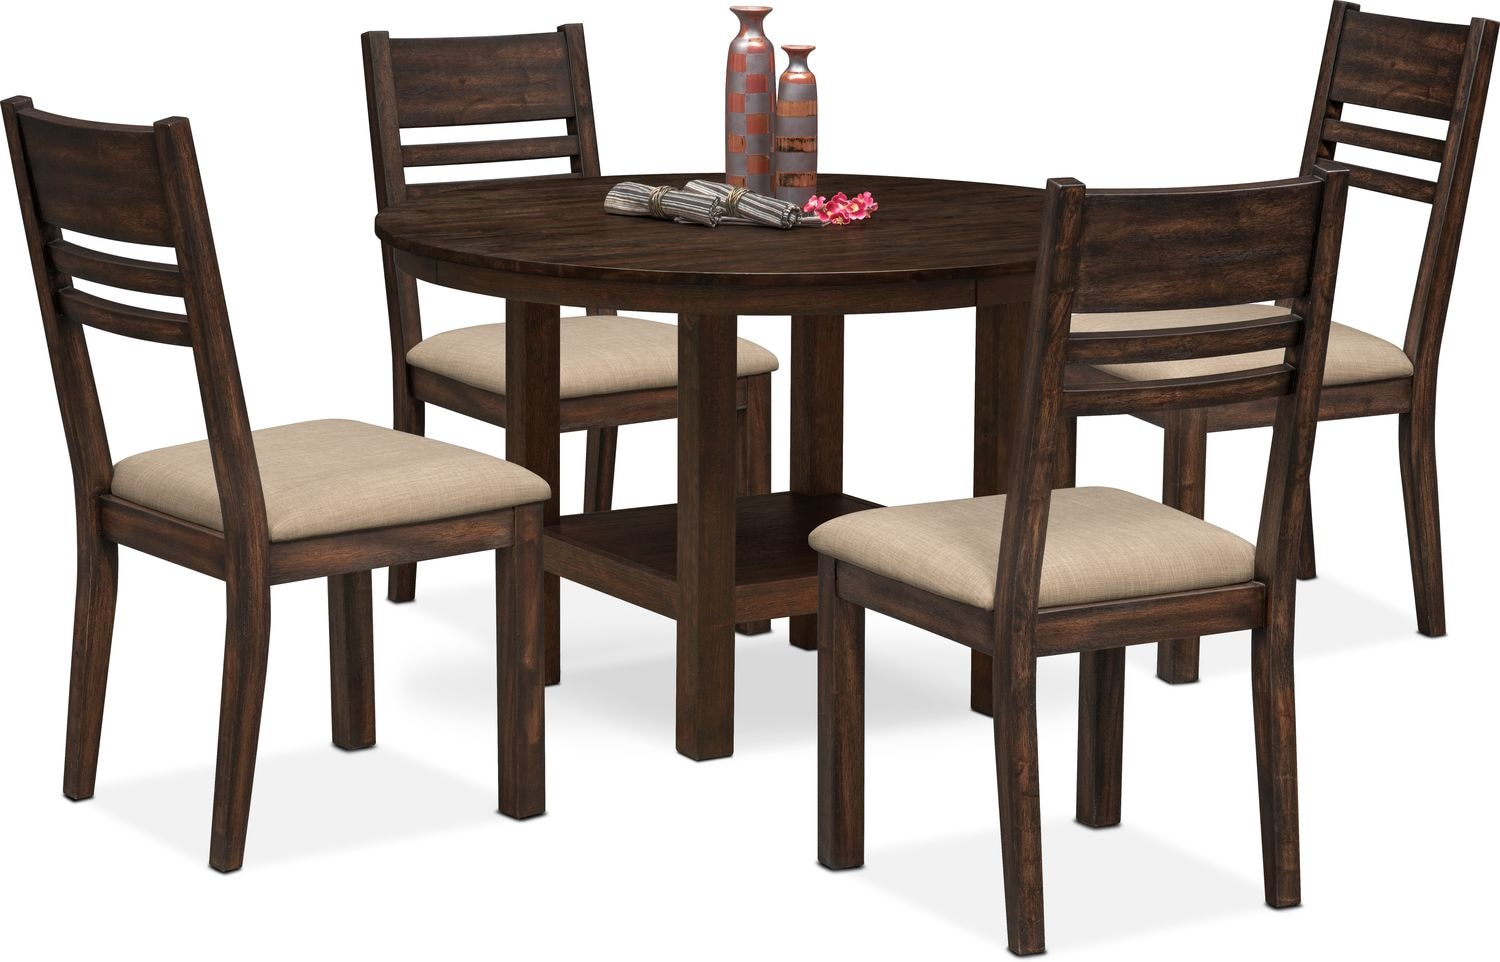 Dining Room Furniture Tribeca Round Table And 4 Side Chairs